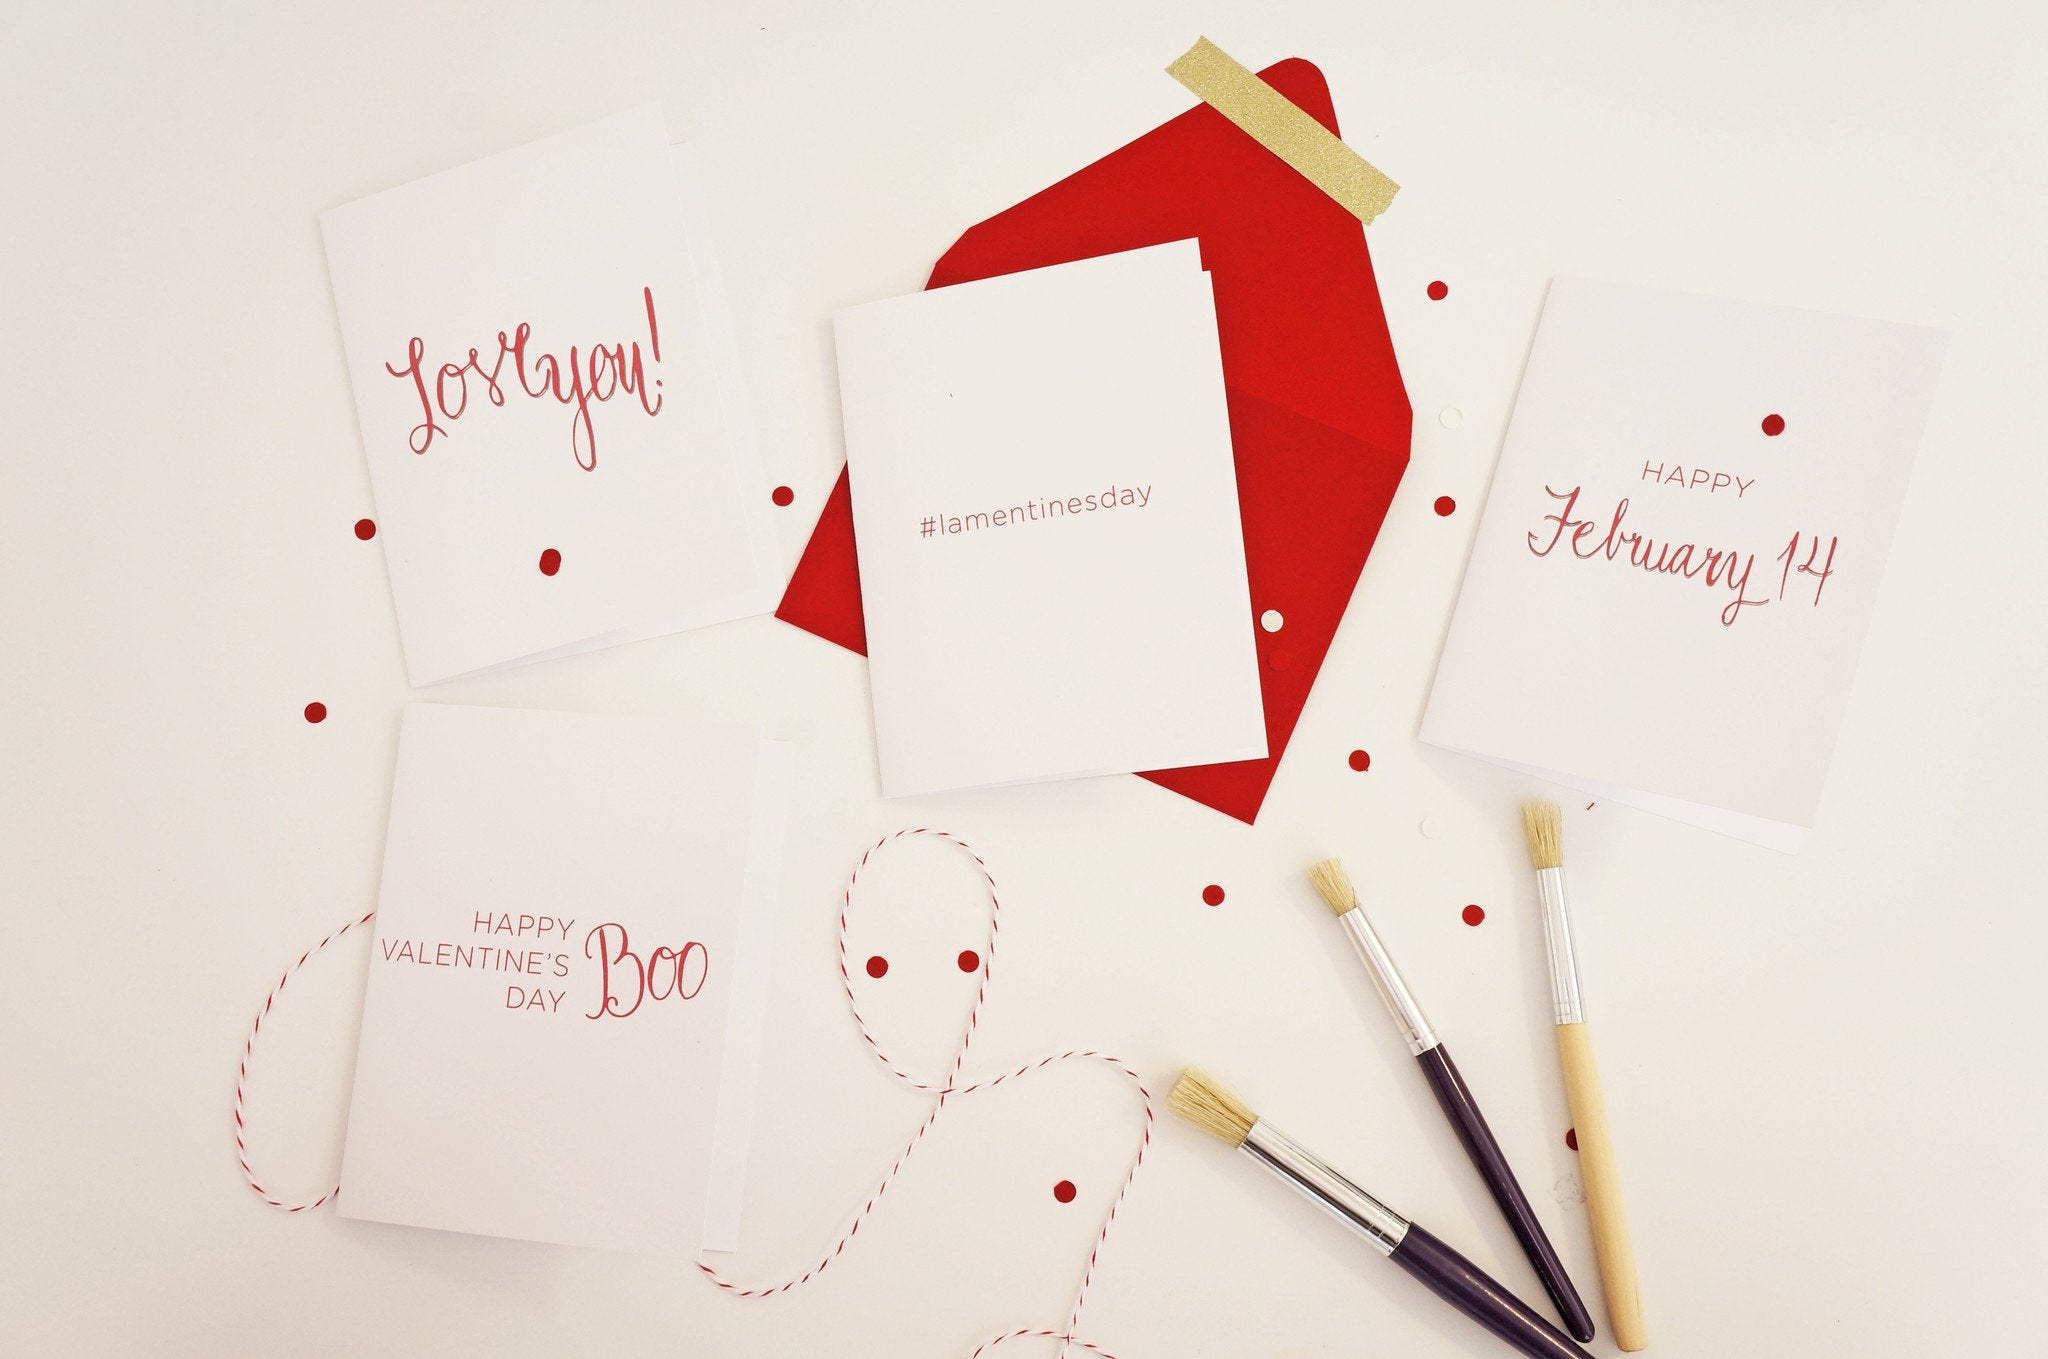 Love You Sweet Valentine's Day Card - shop greeting cards, handmade stationery, & wedding invitations by dodeline design - 2